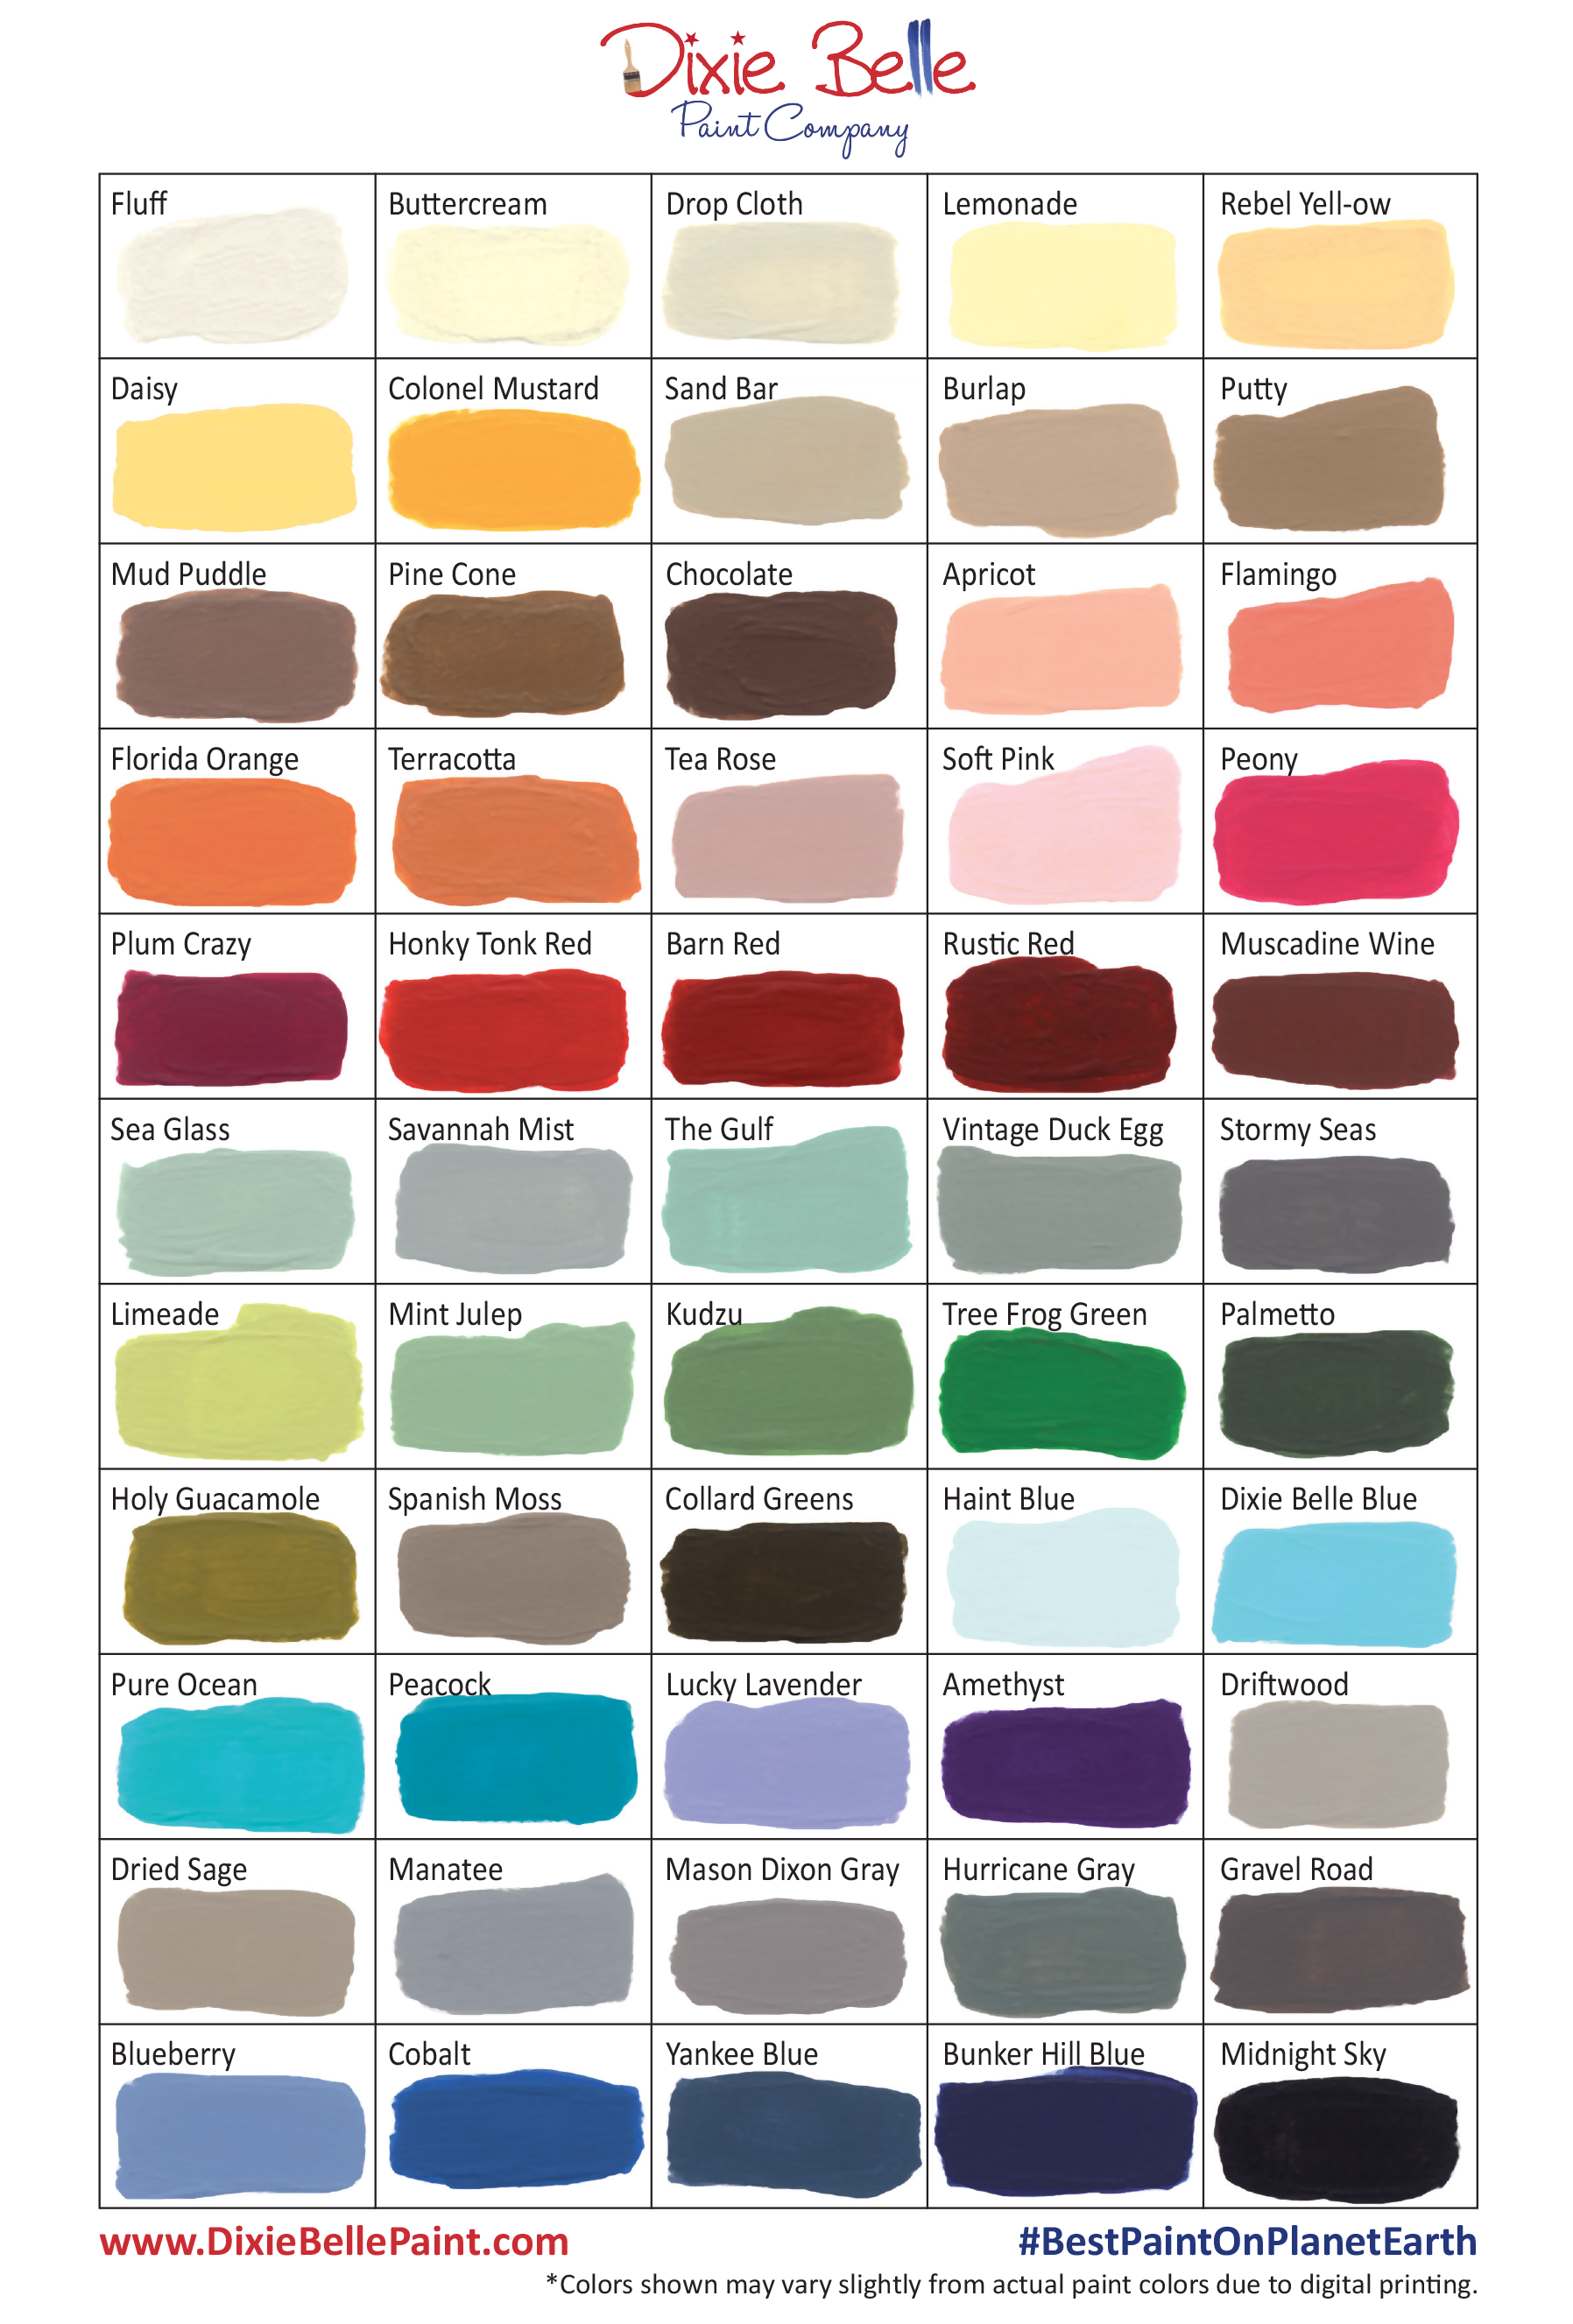 Dixie Belle Paint Company Now Has 55 Awesome Chalk Mineral Colors To Choose From Not Mention All The You Could Make If Mixed Them Too